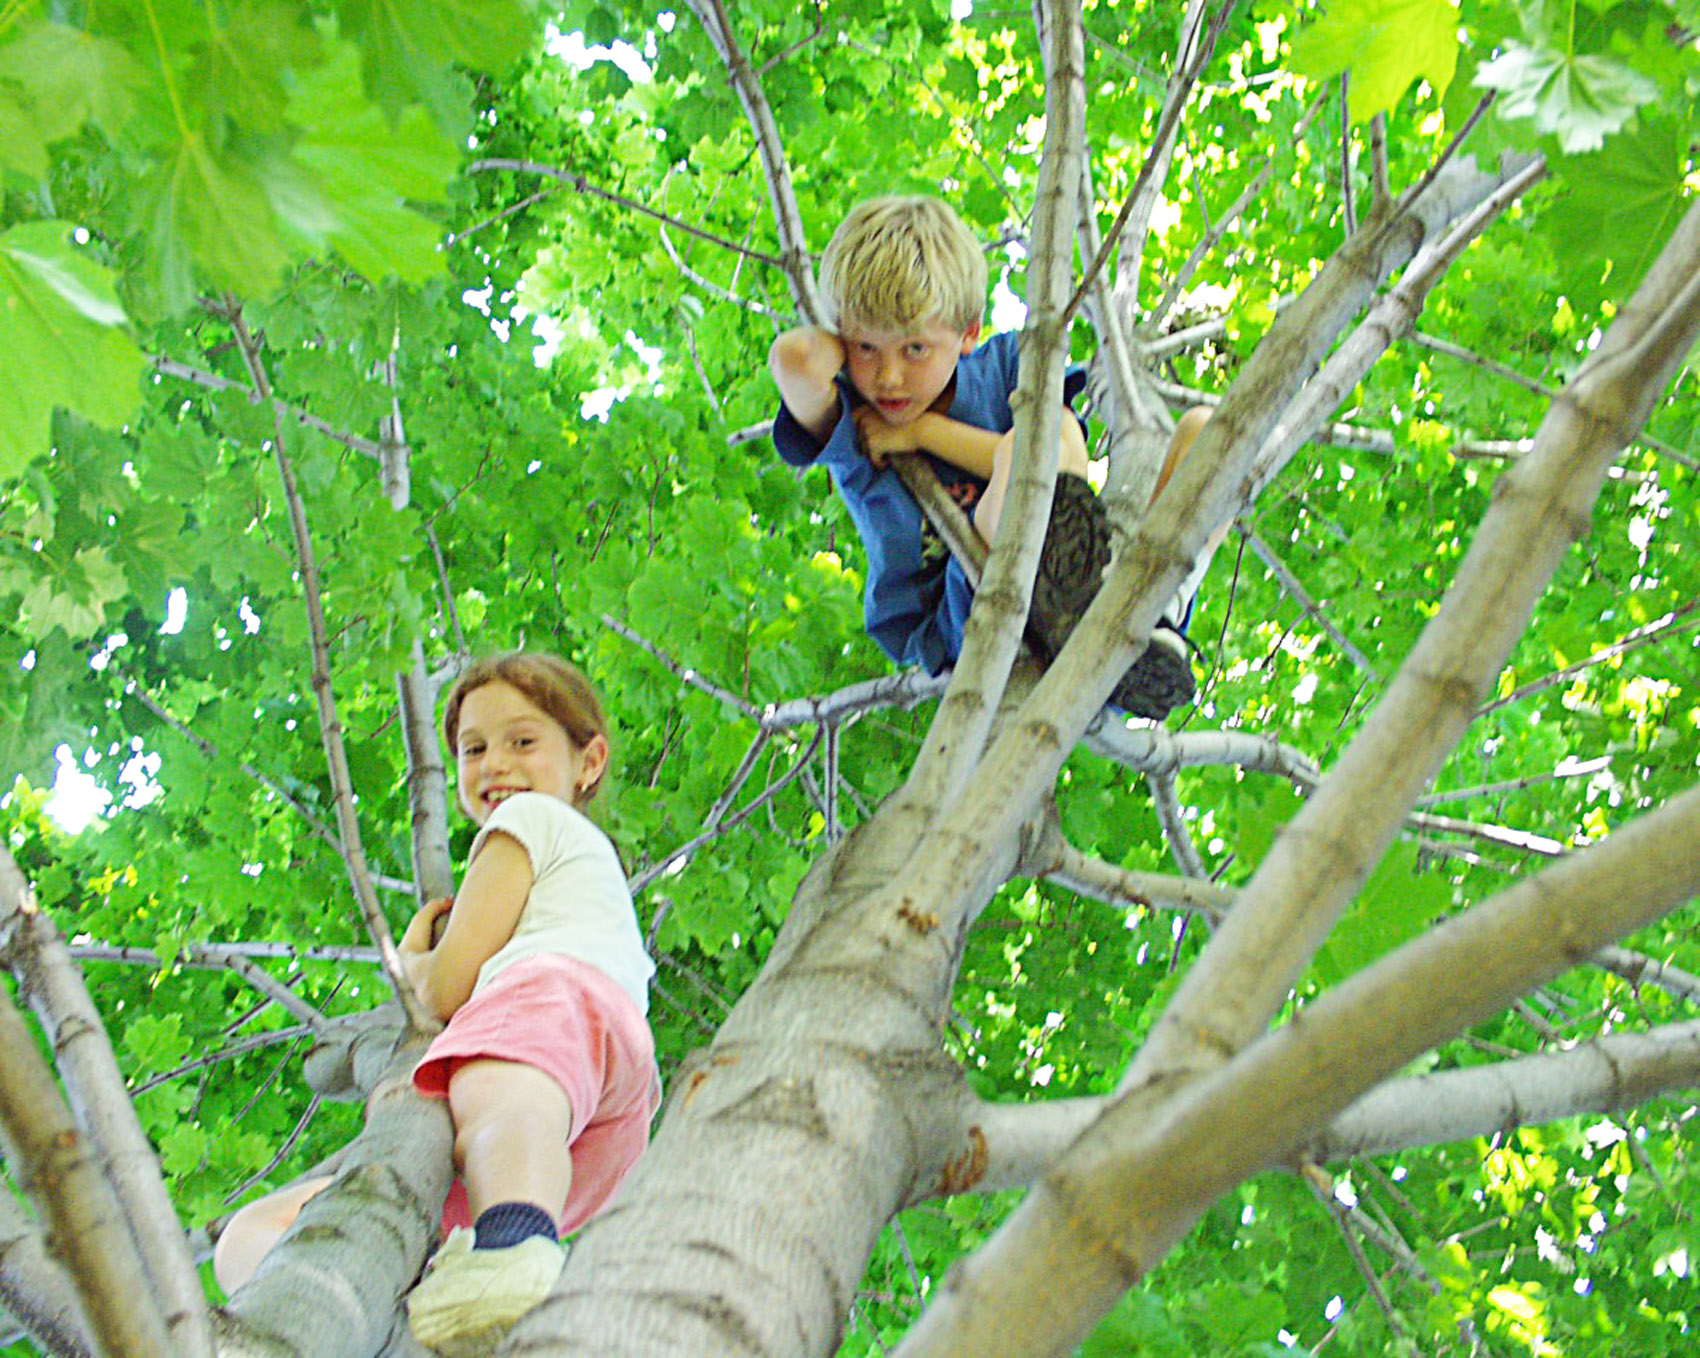 My daughter Eve, age 5 in 1996, climbing a tree with her friend Theo.